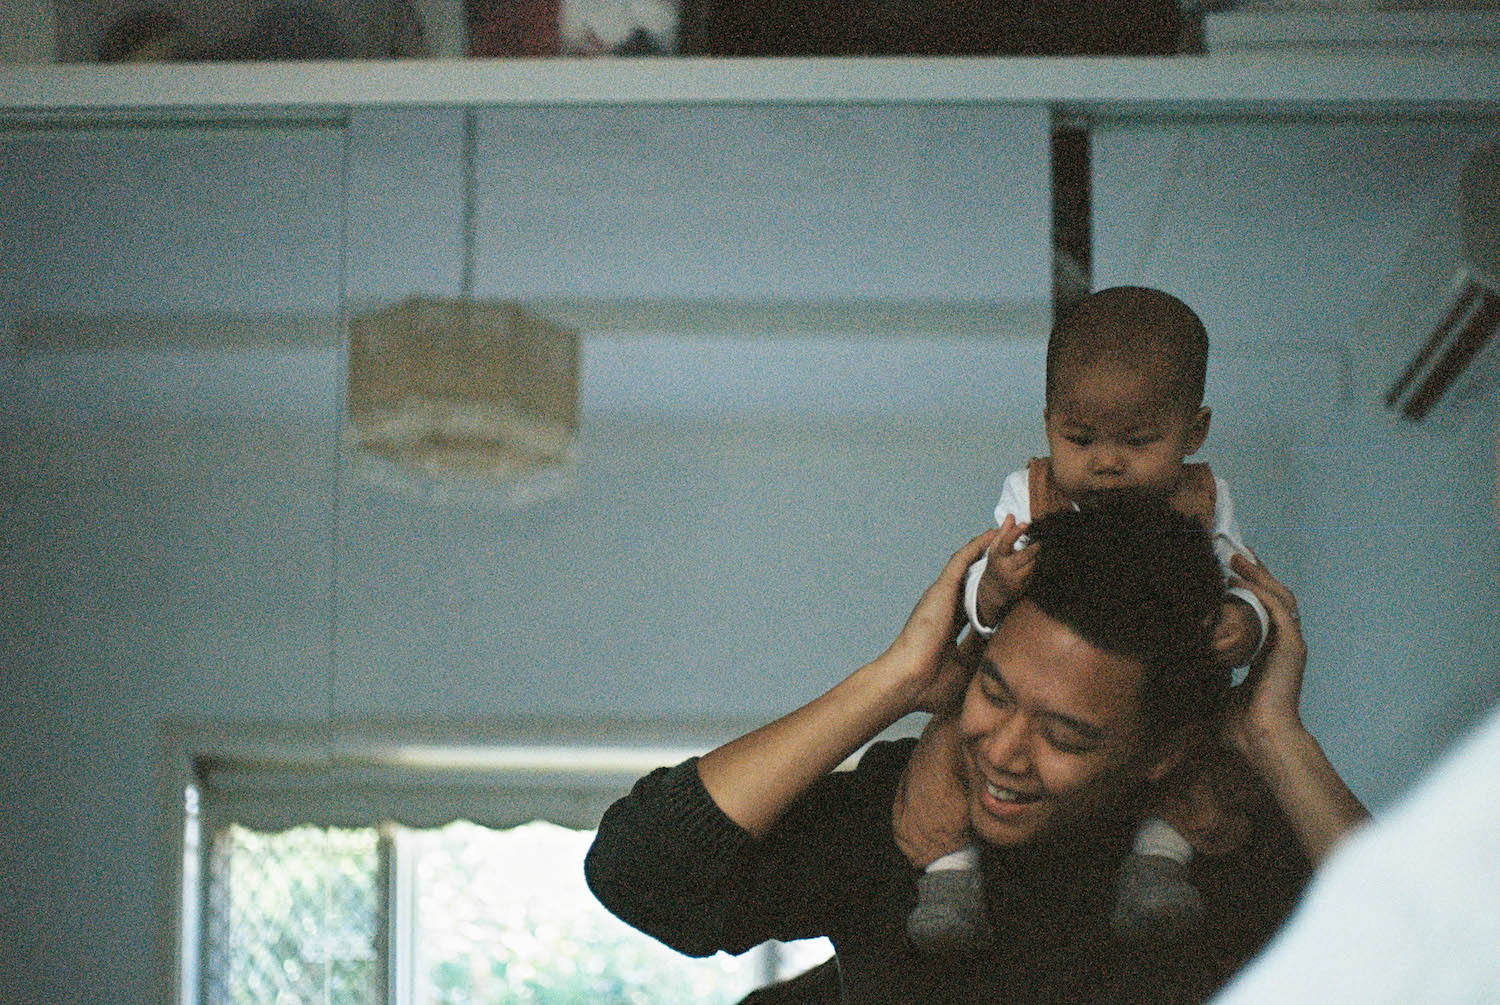 Baby Alexa & her Dad playing at home, photographed on 35mm film in Wembley.